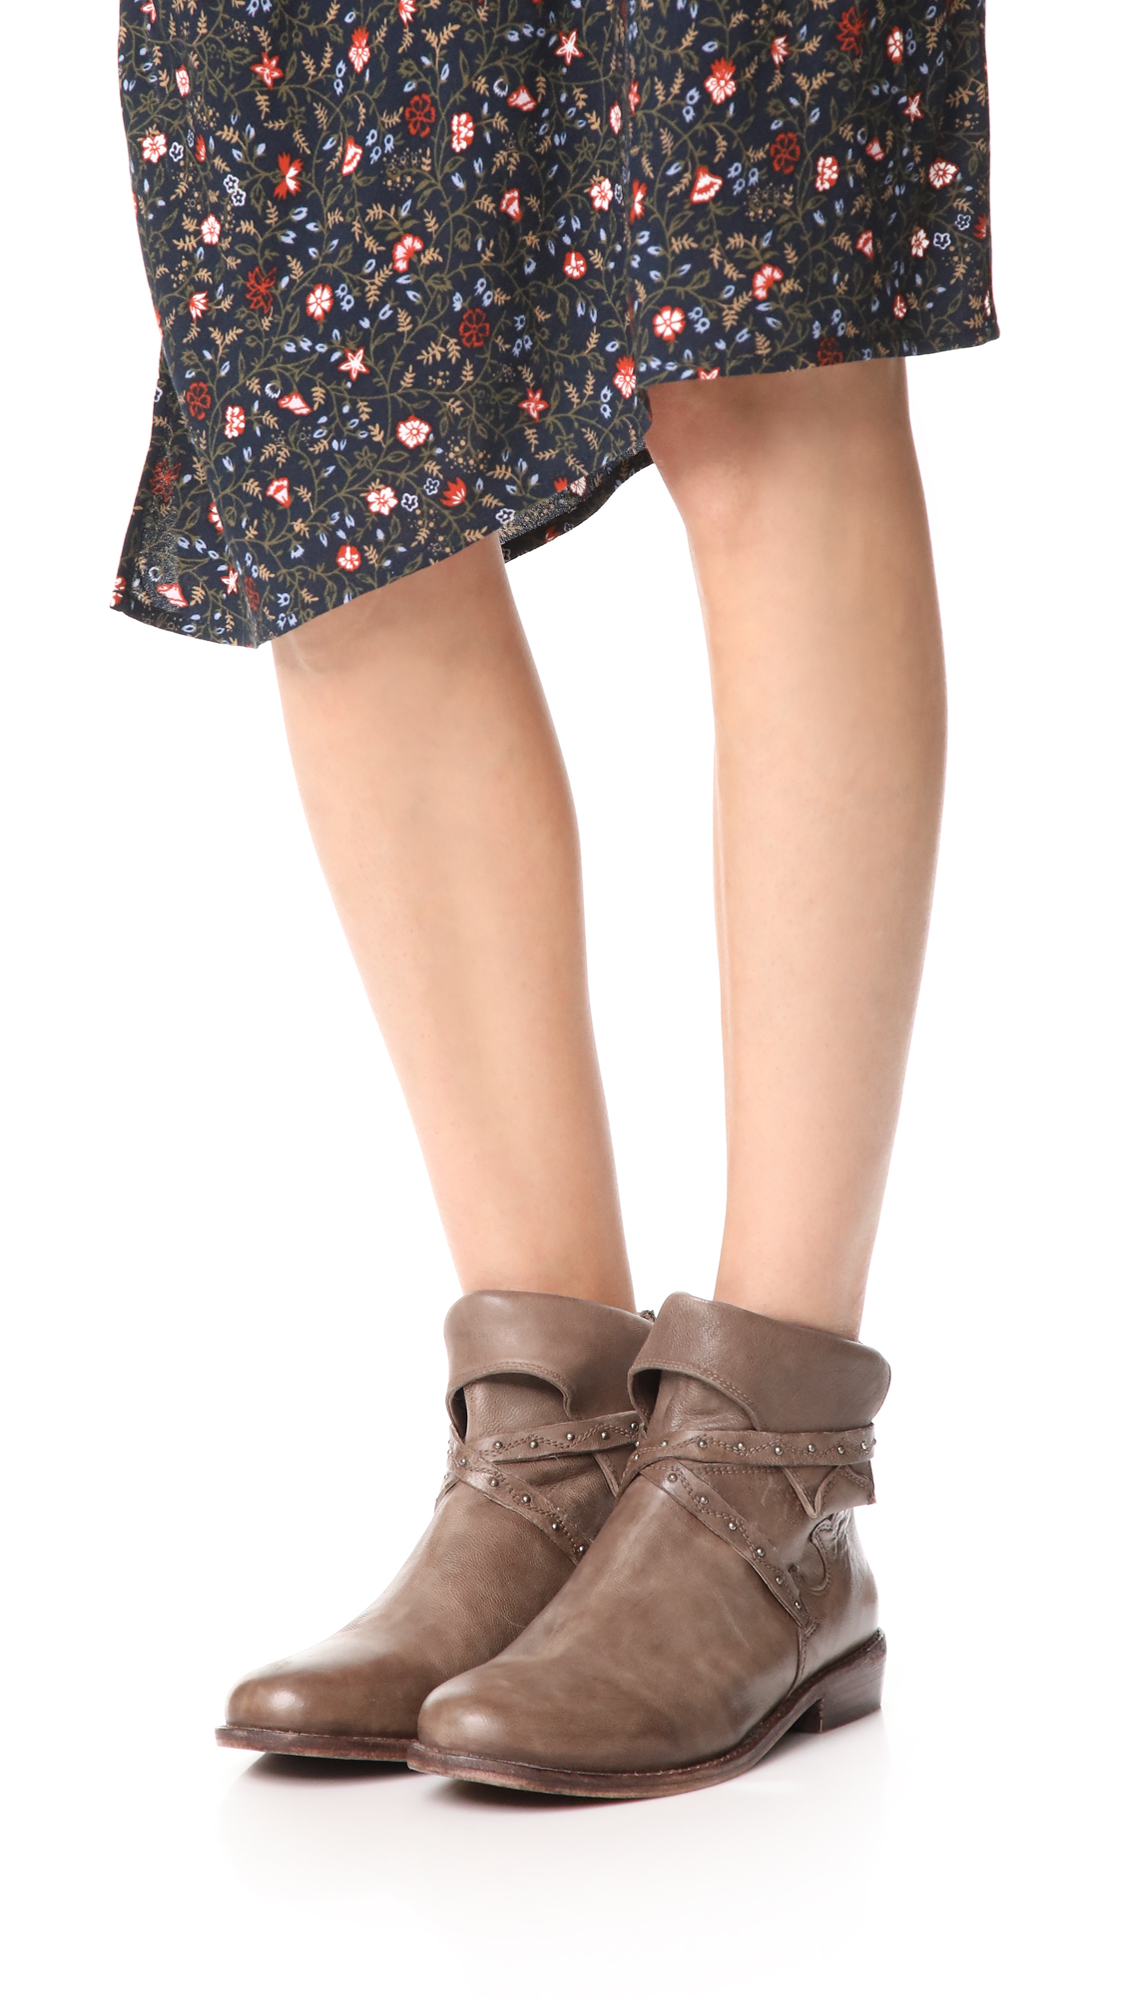 Alamosa Ankle Boot Free People FK1Xf6NCP5